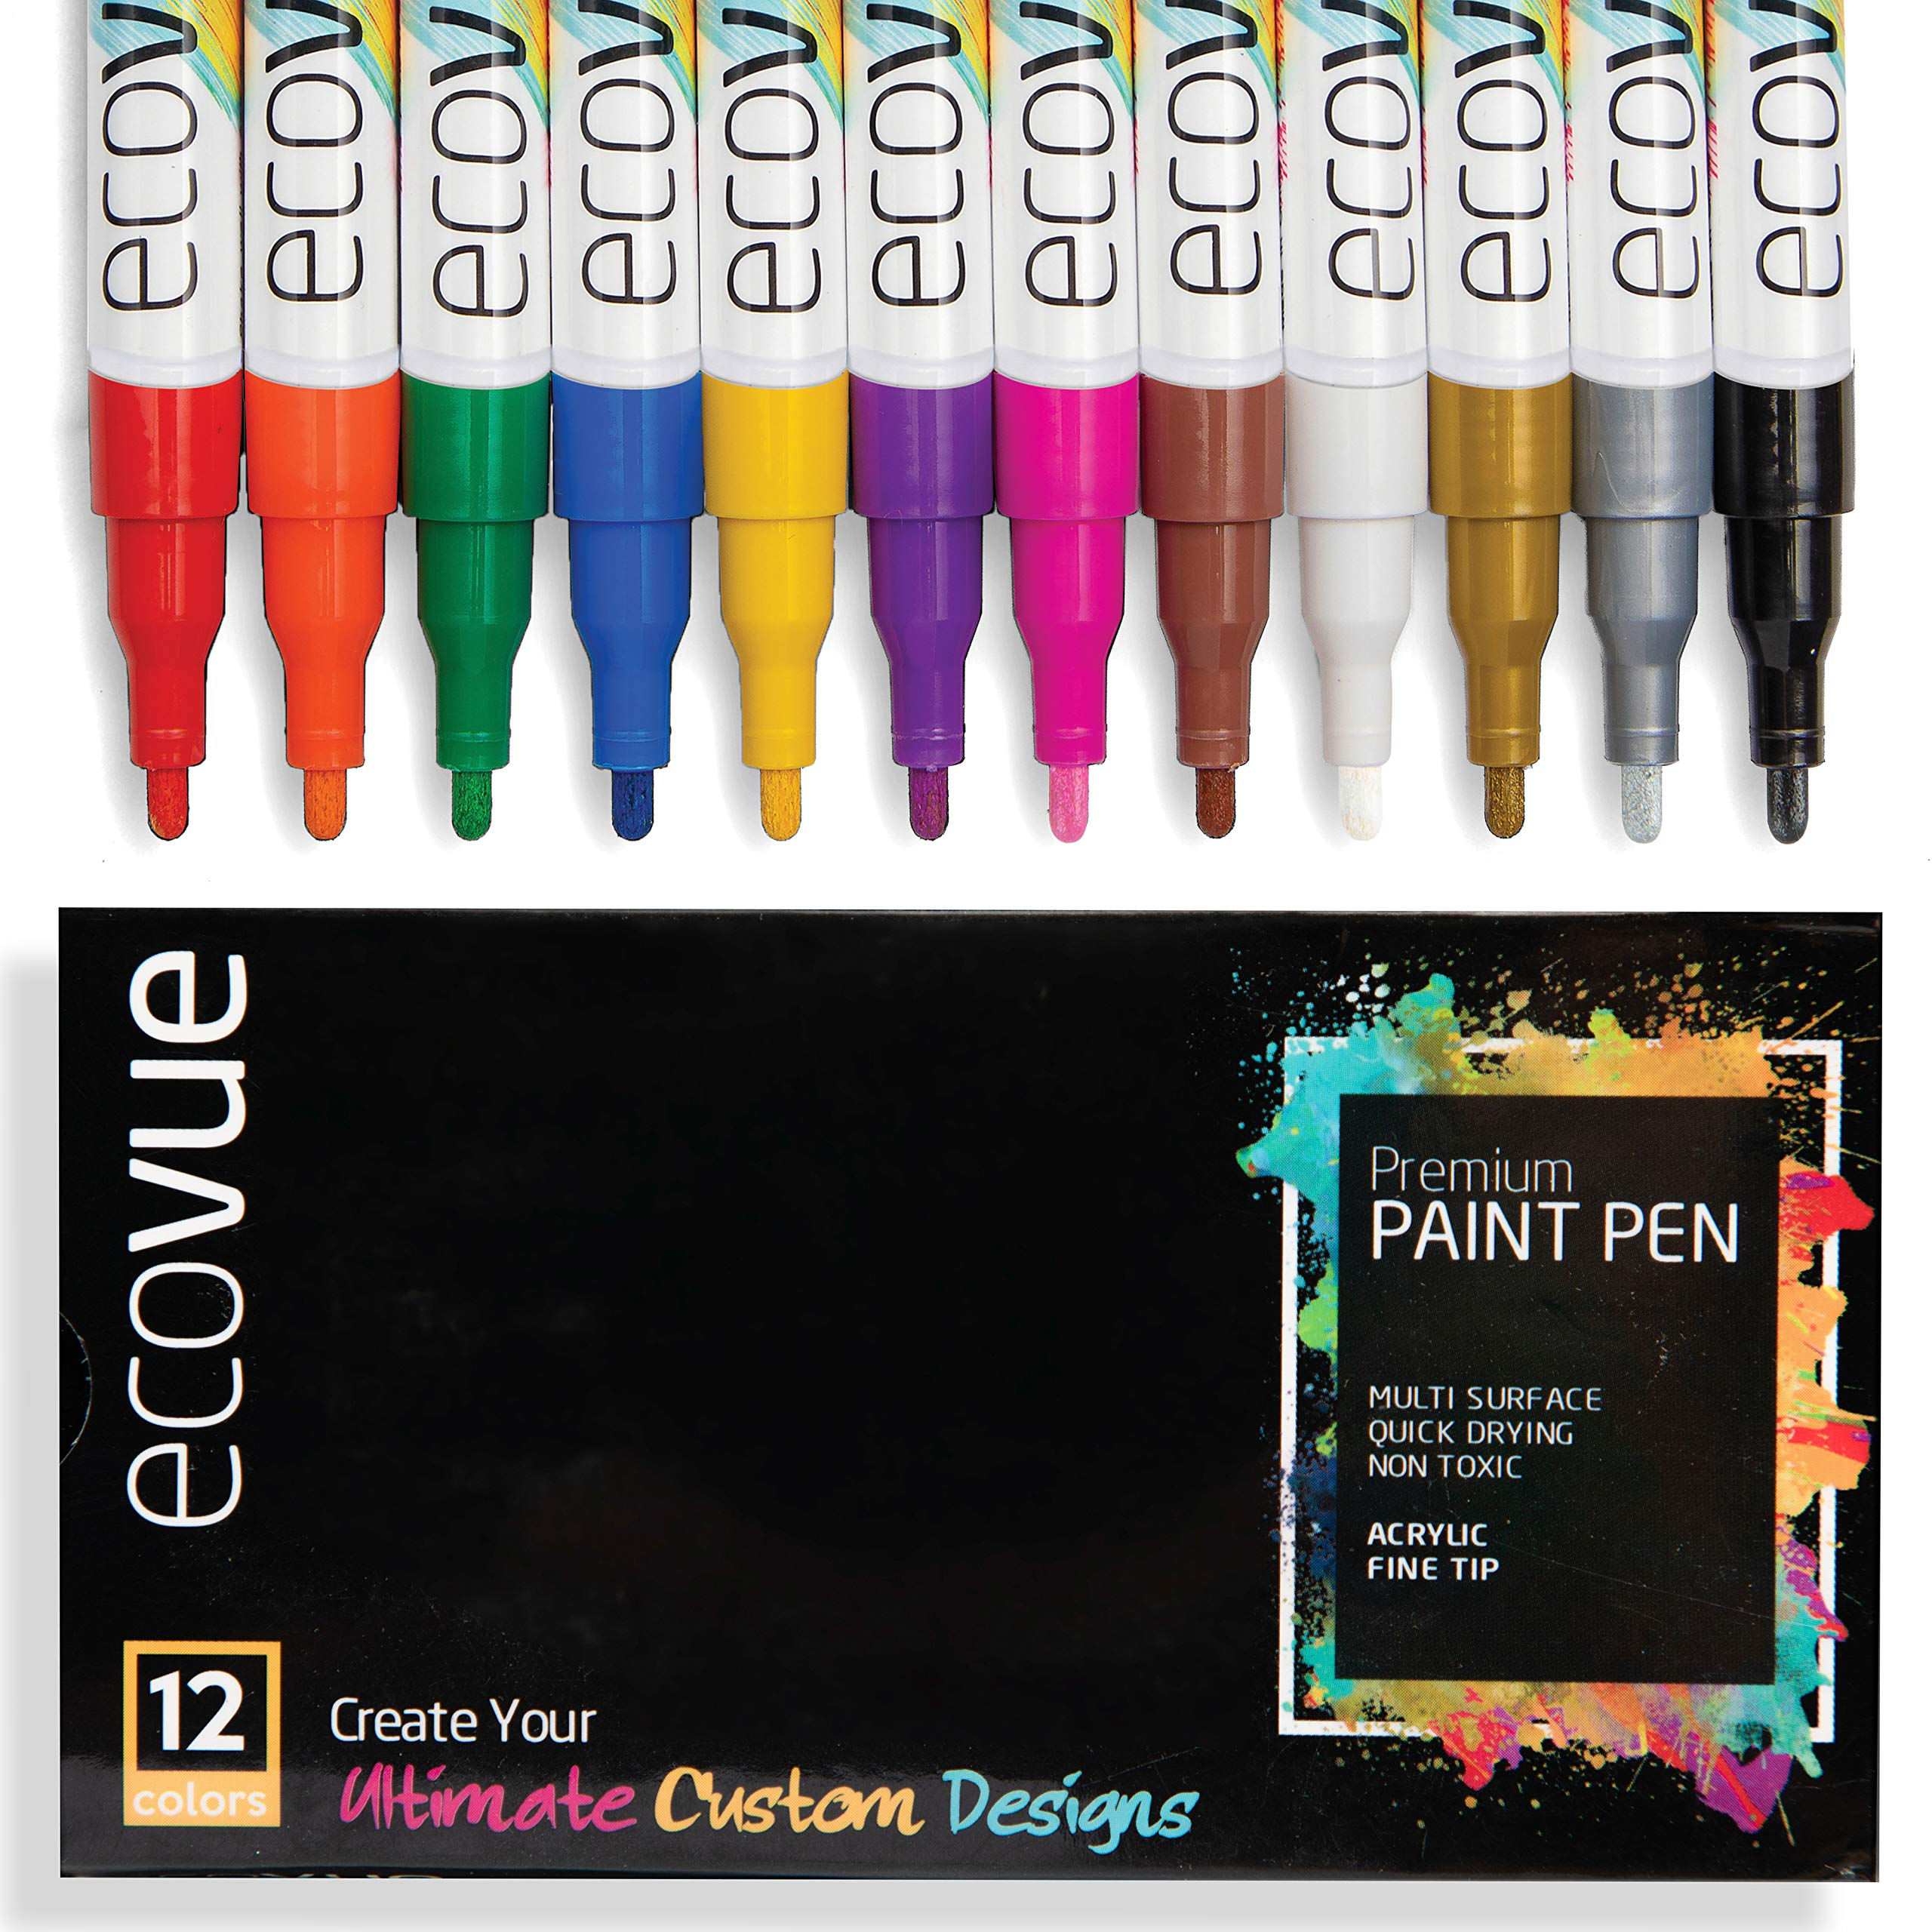 Acrylic Paint Marker Pens Fine Tip in 12 Vivid Fast Drying Colors For Glass, Wood, Mugs, Rock, Metal, Clay